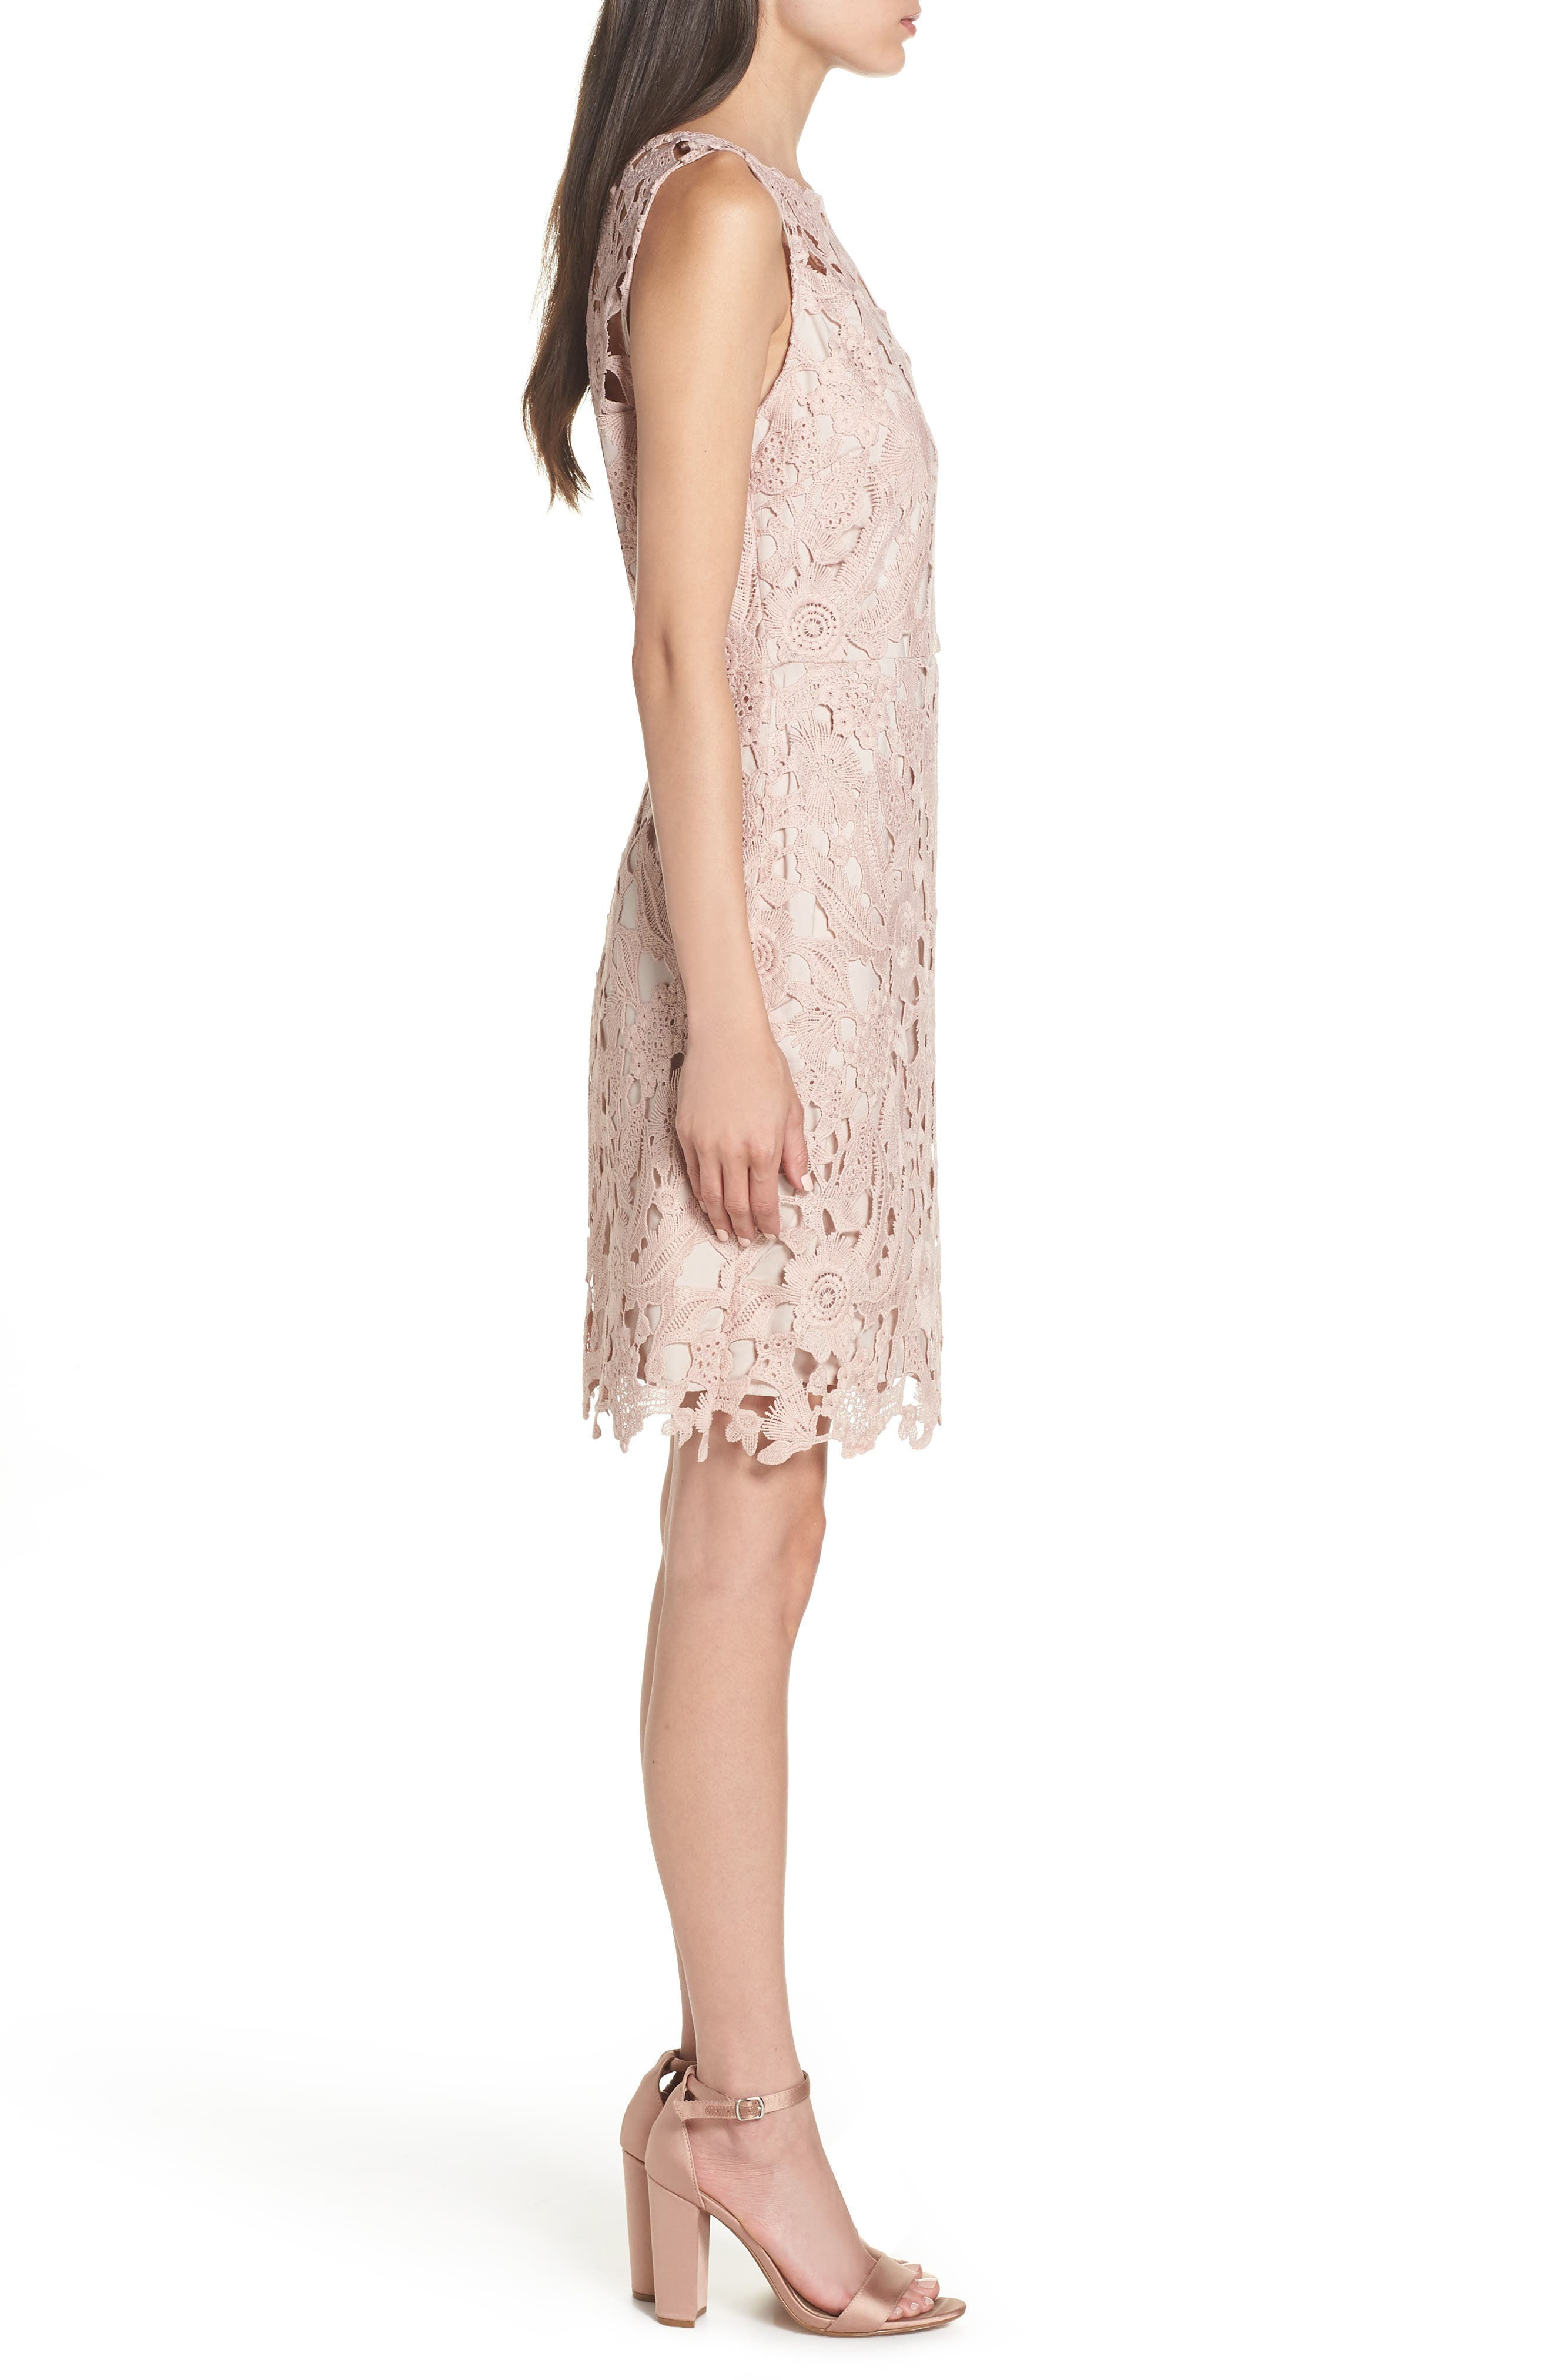 SAM EDELMAN, Lace Sheath Dress, Alternate thumbnail 4, color, BLUSH